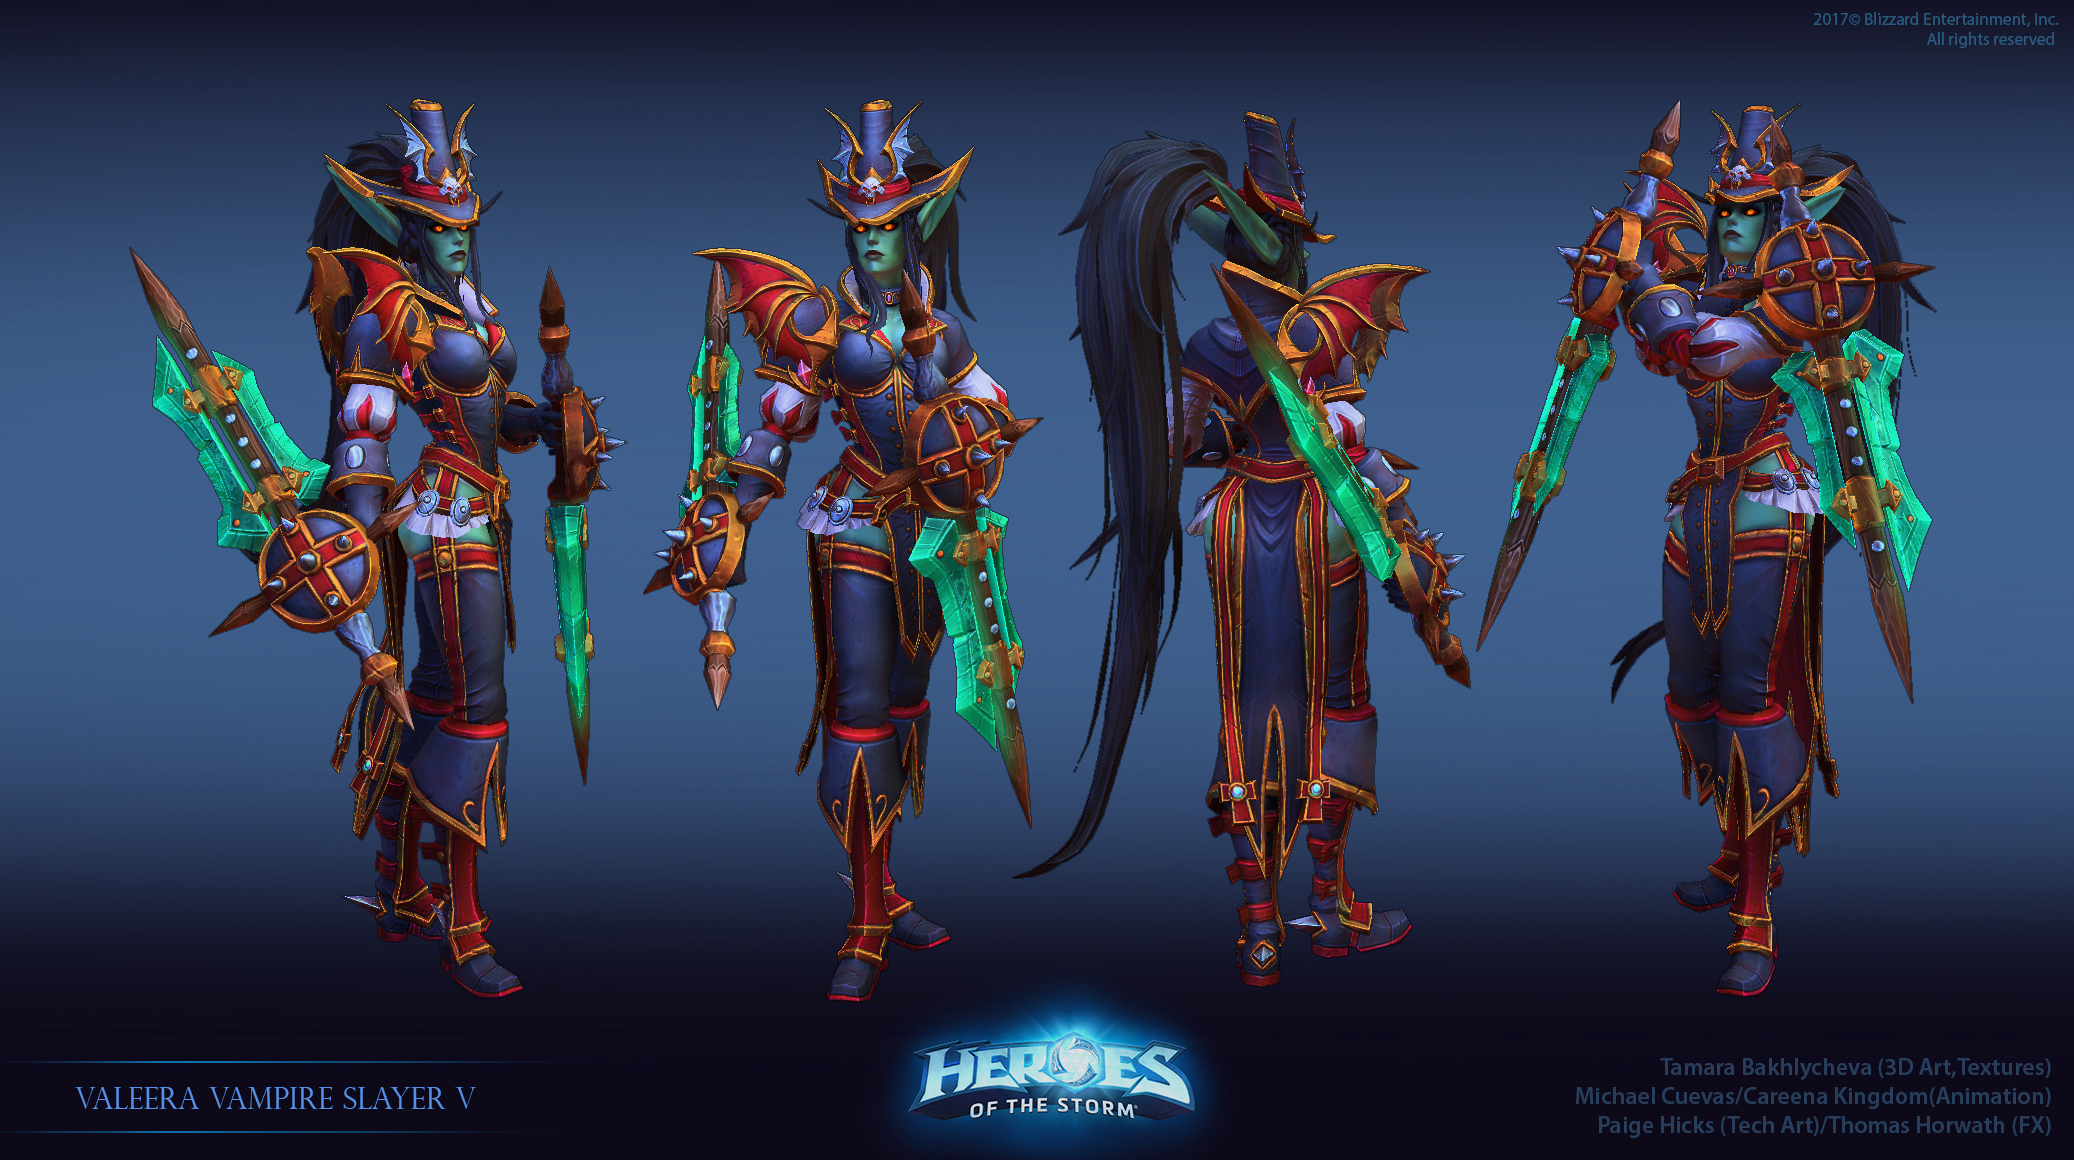 Valeera Vampire Slayer V By Firstkeeper On Deviantart That being said, i am still knowledgable of common map strategies, objective. valeera vampire slayer v by firstkeeper